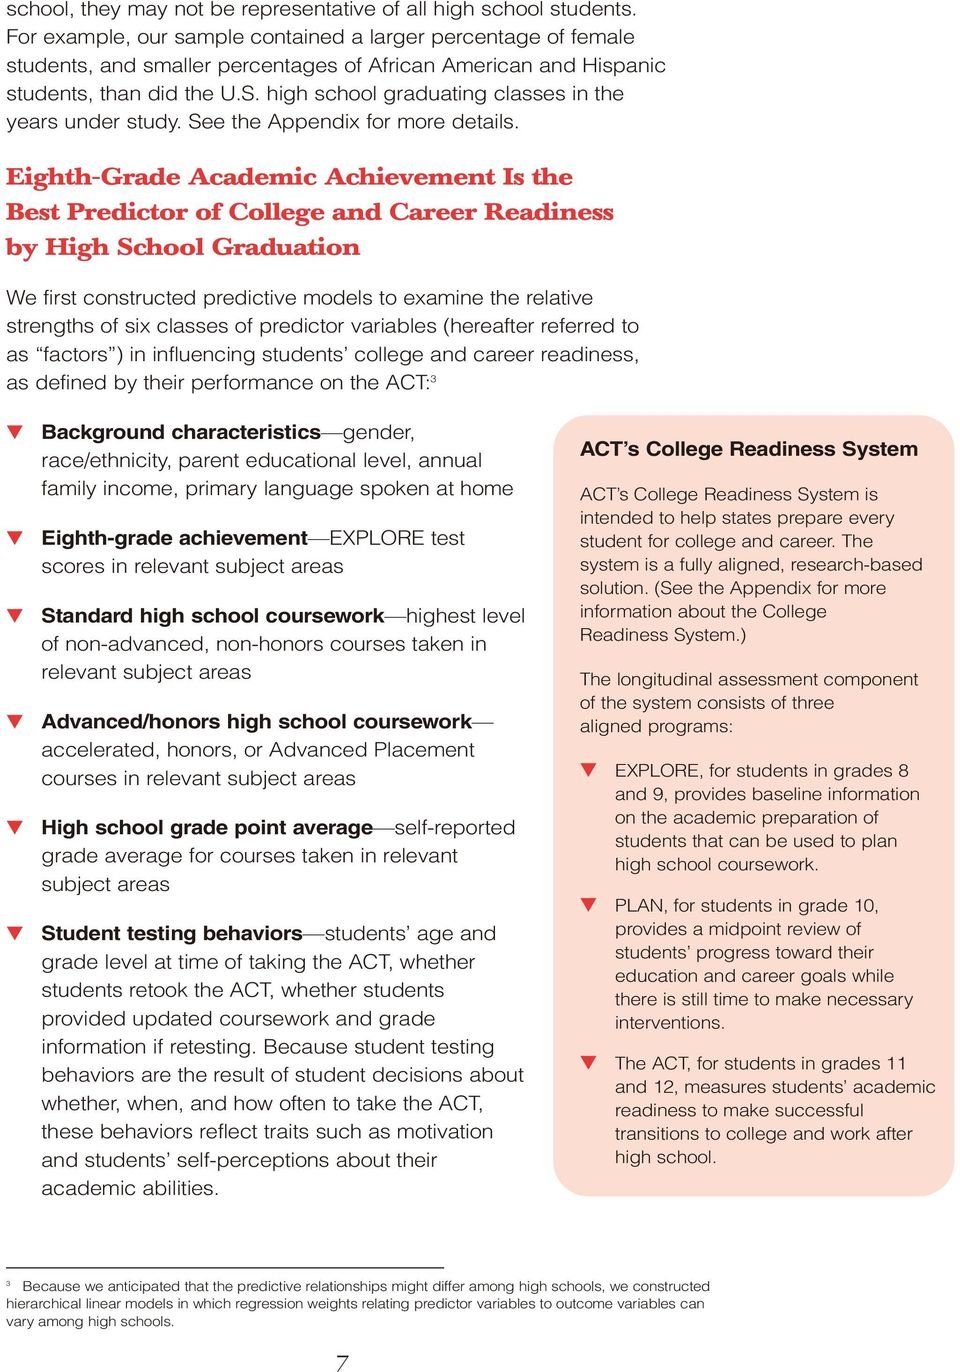 high school graduating classes in the years under study. See the Appendix for more details.